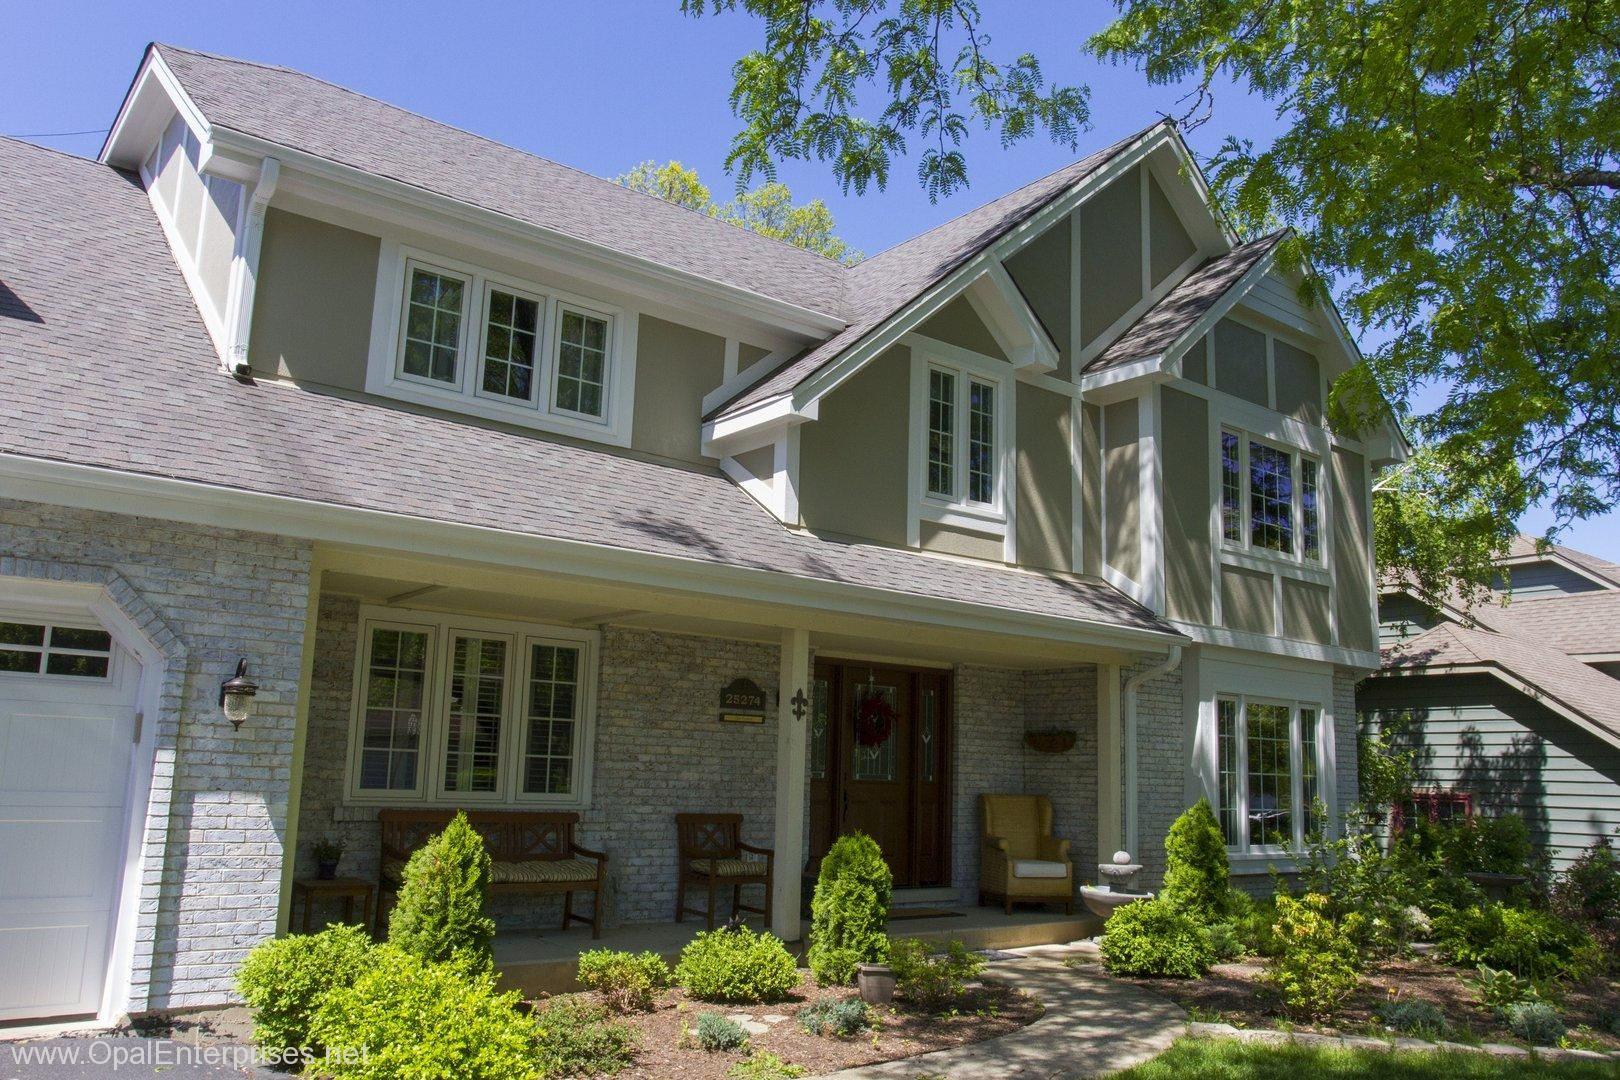 Stylish Stucco And Trim Siding Distinguishes This Newly Remodeled Home Exterior House Renovation Siding Trim House Exterior